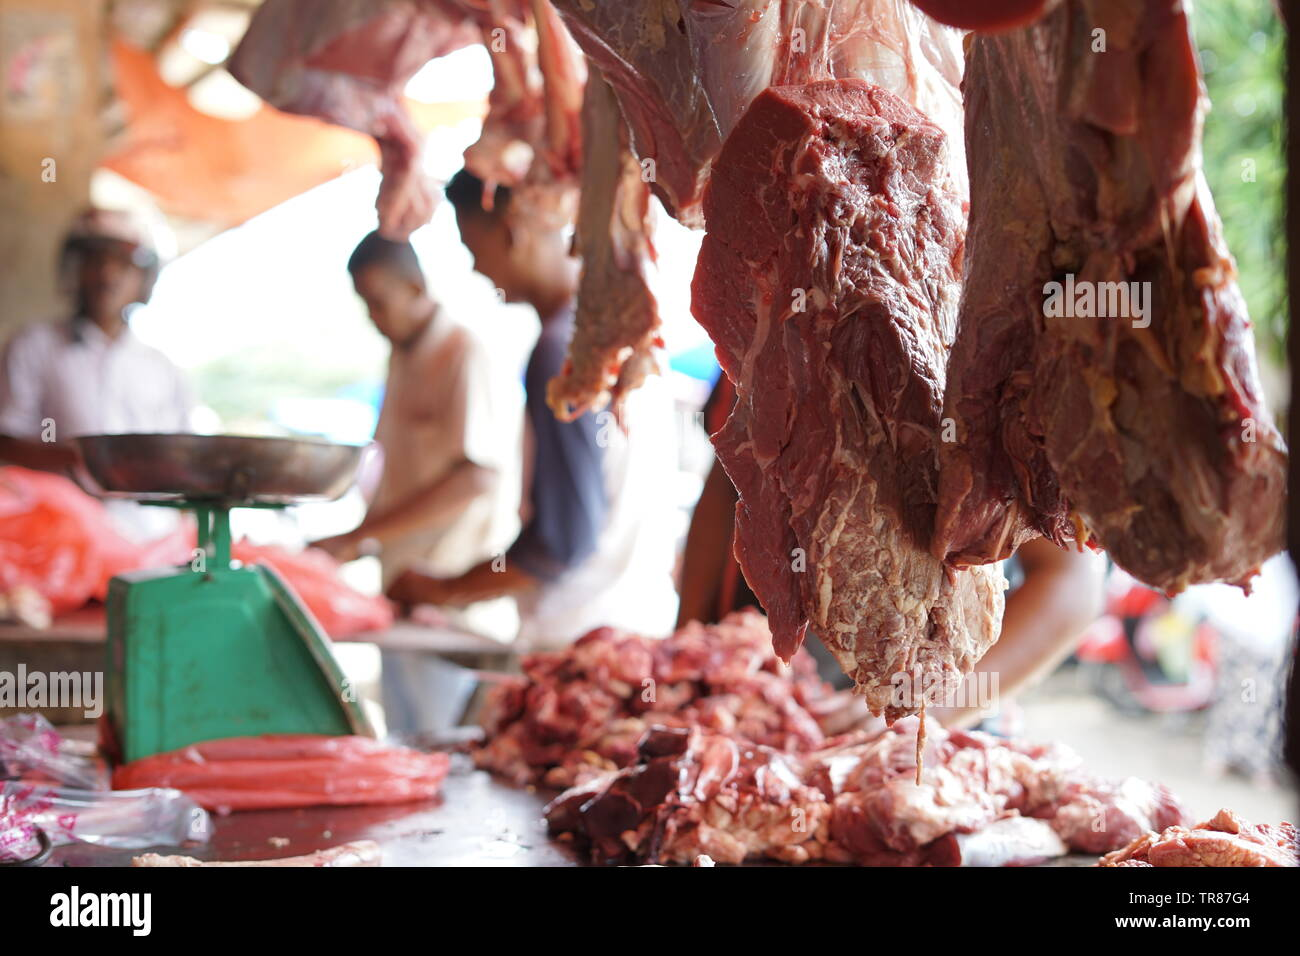 Fresh Halal Beef Meat and Scales at Meat Shop Stock Photo: 255263796